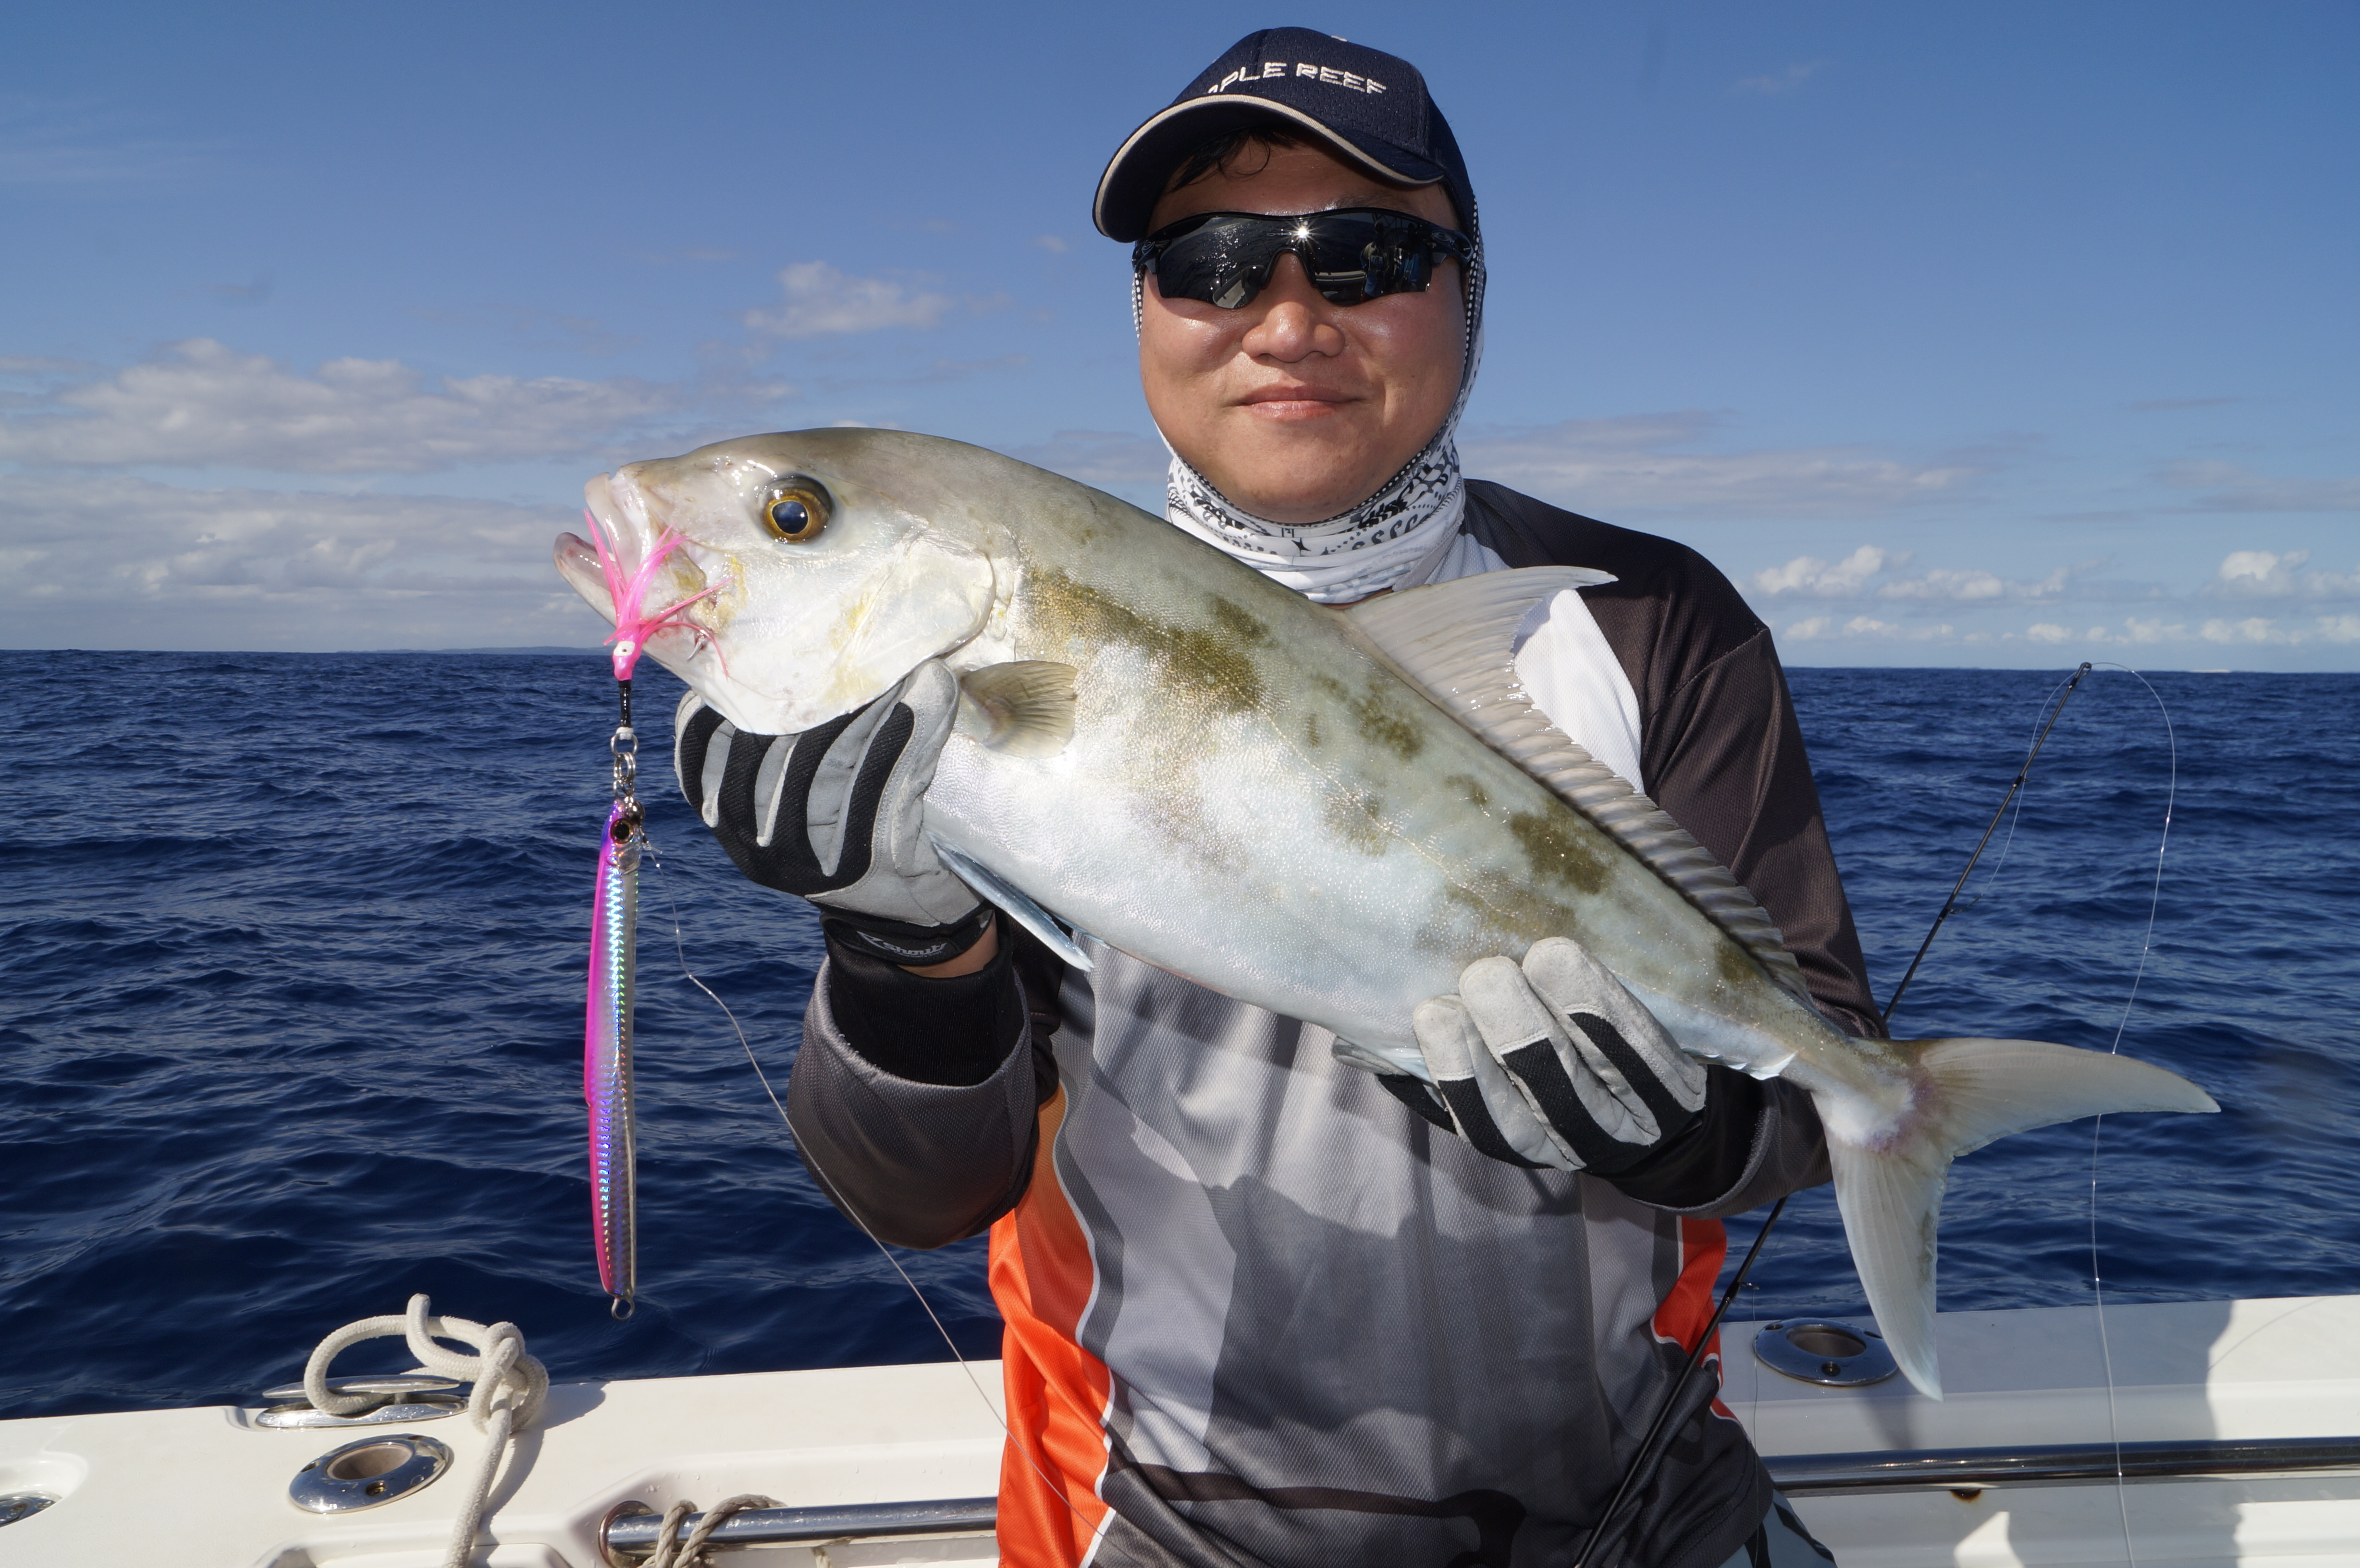 Glenn Han with a typical ambo jigged around a tightly packed bait school.